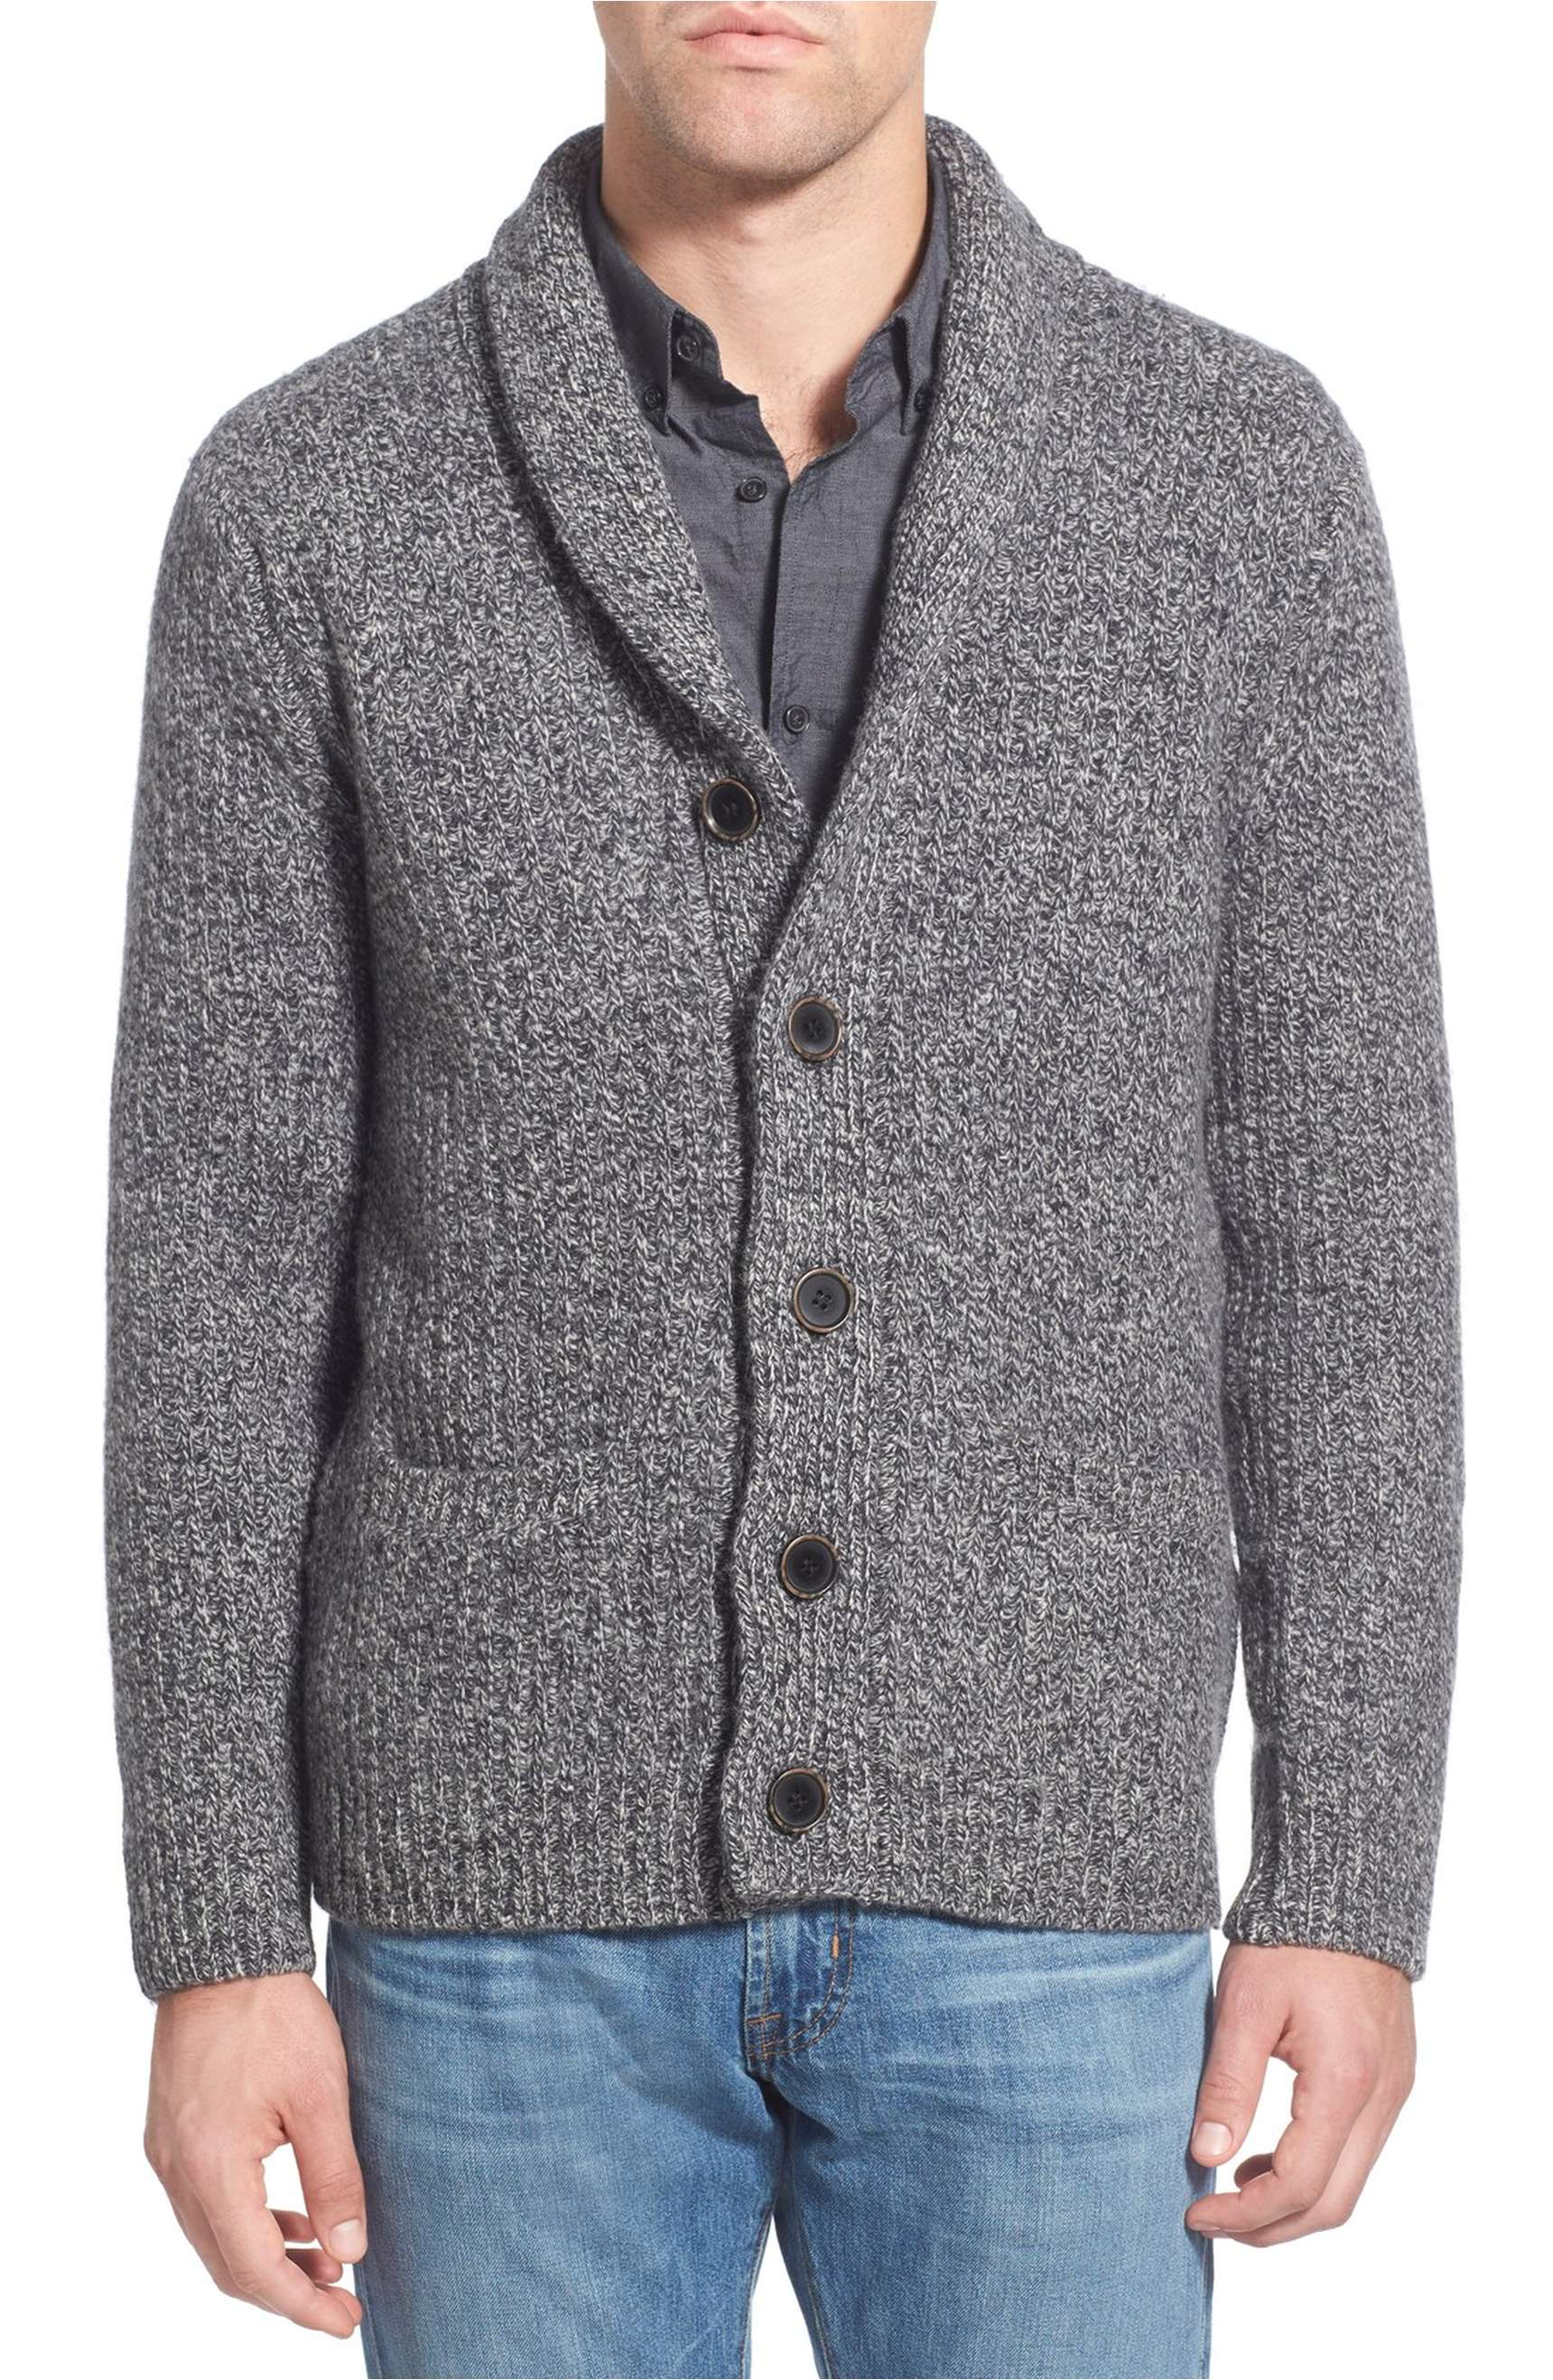 11 Best Sweaters for Men 2017 - Men's Cardigans, V-Necks, Cashmere ...